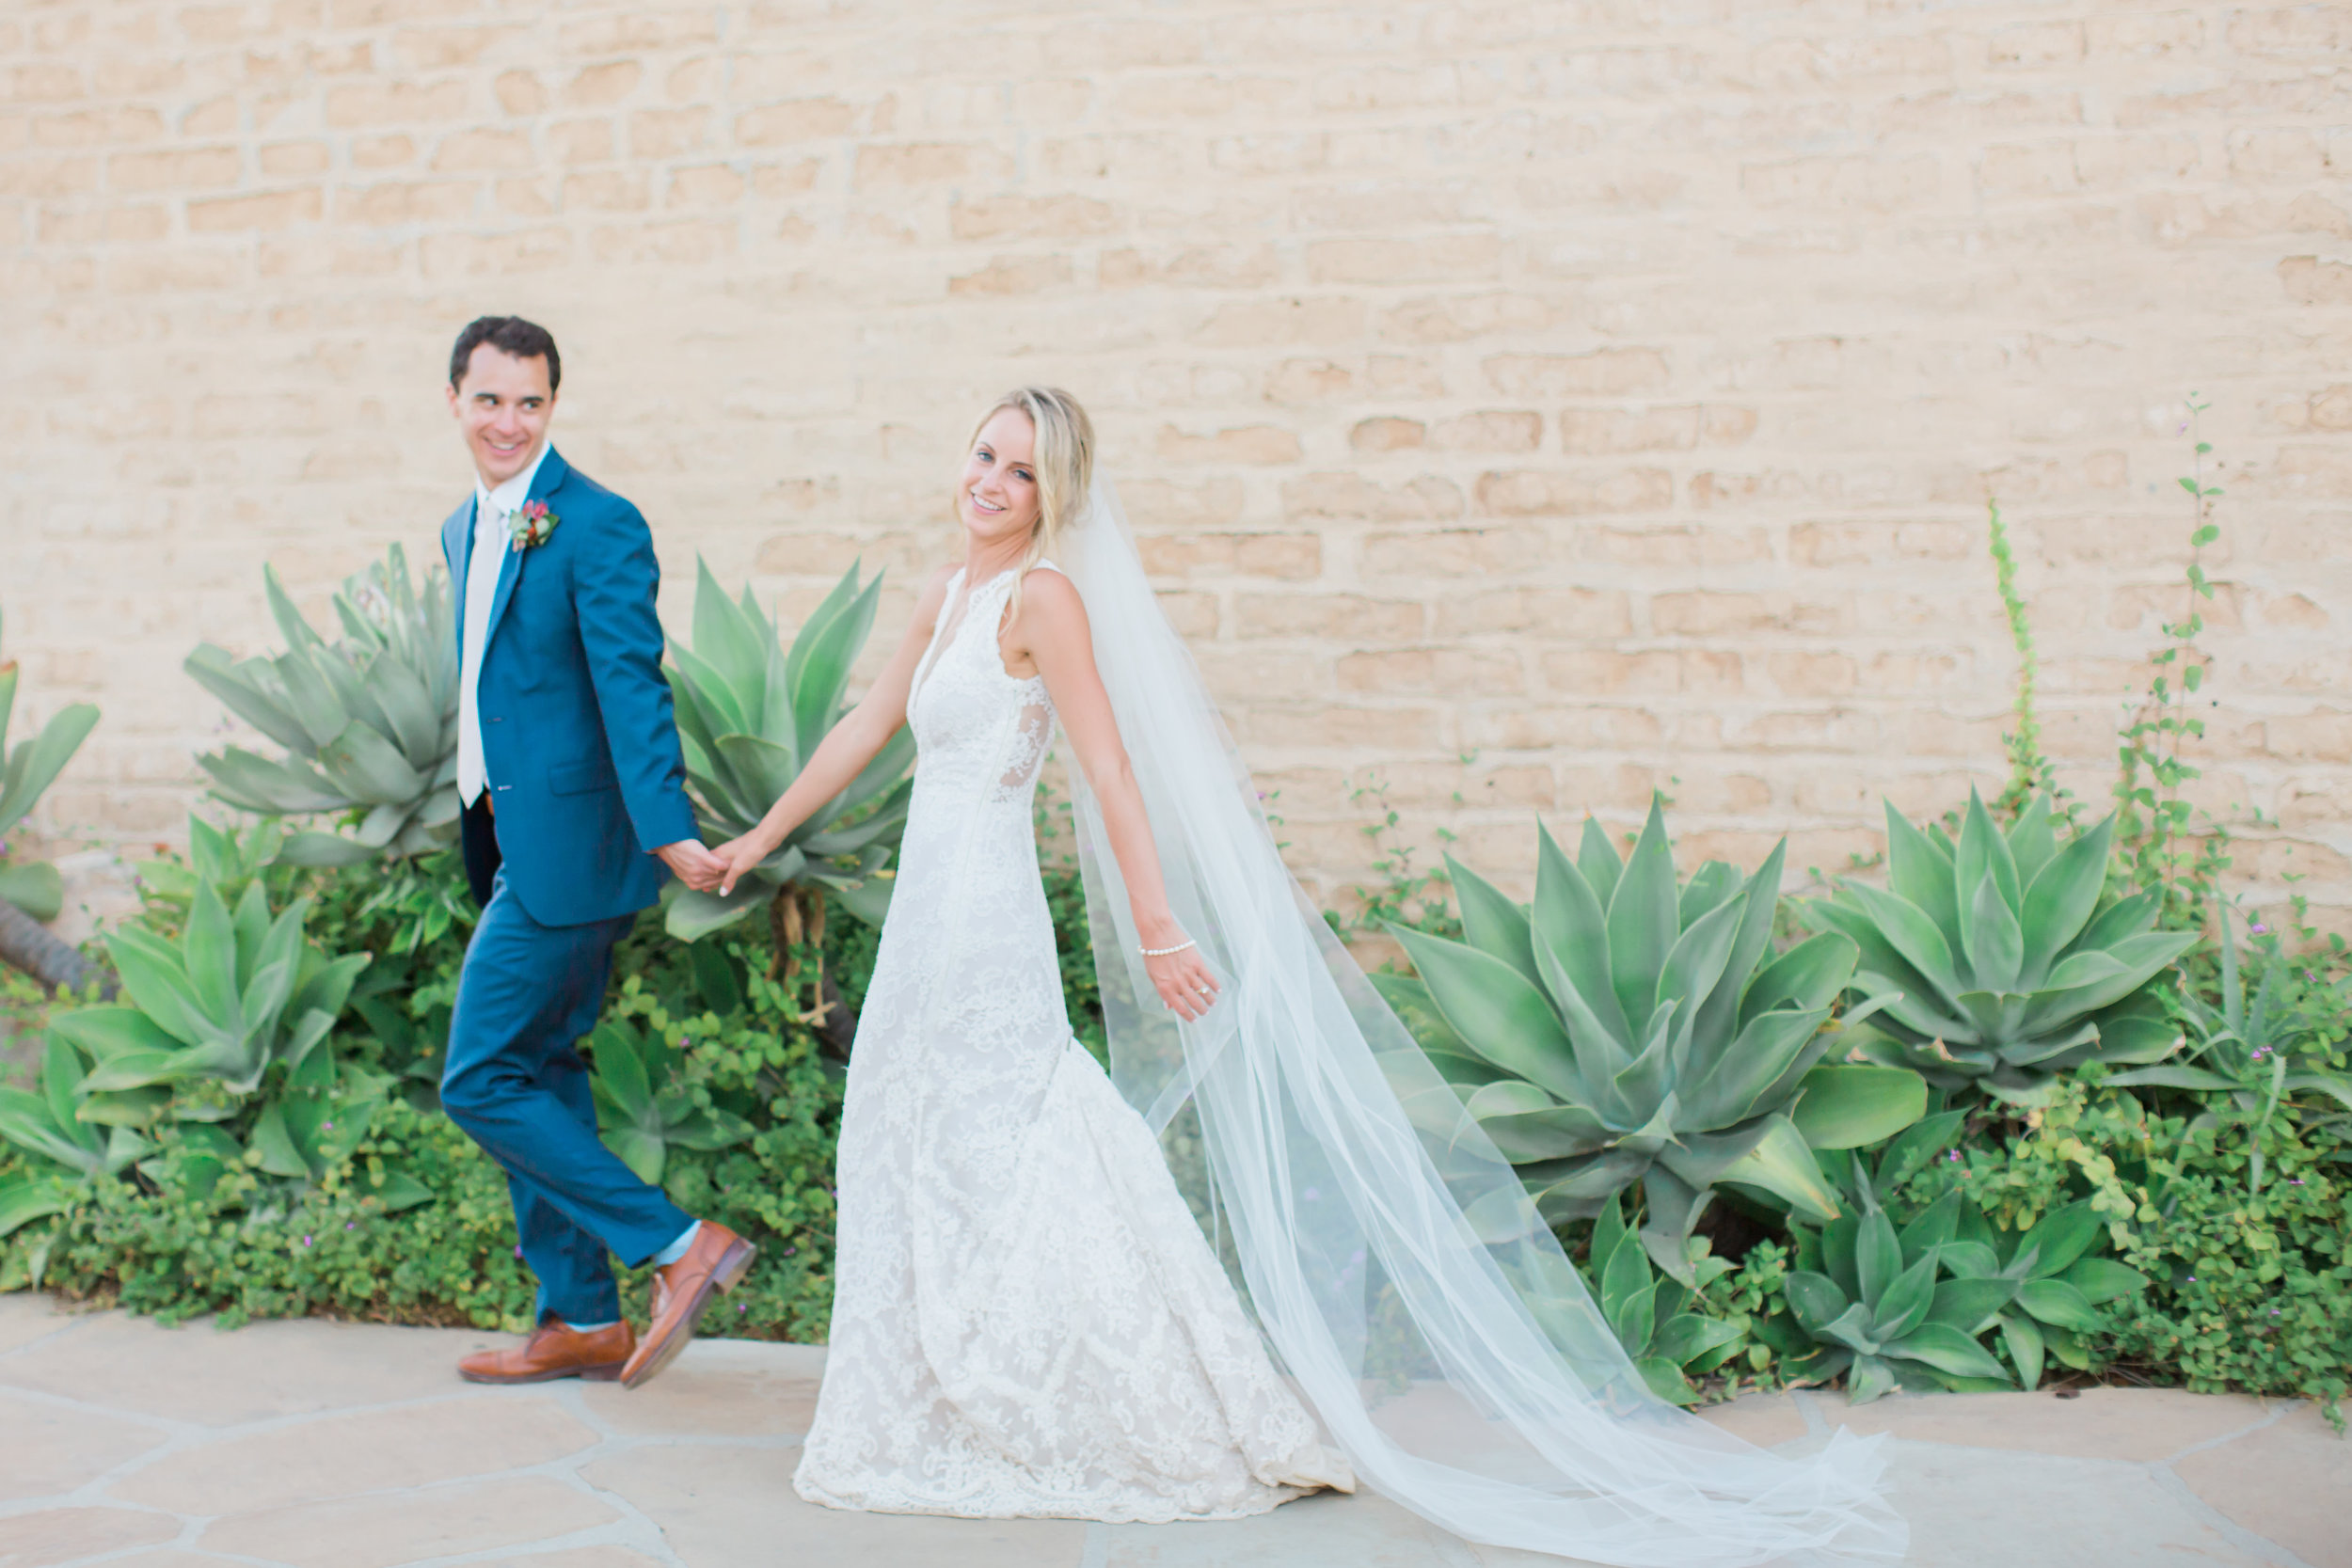 www.santabarbarawedding.com | James and Jess Photography | Santa Barbara Historical | Amazing Day Events | La Fleur du Jour | TEAM Hair & Makeup | Double Take | Bride and Groom After Ceremony